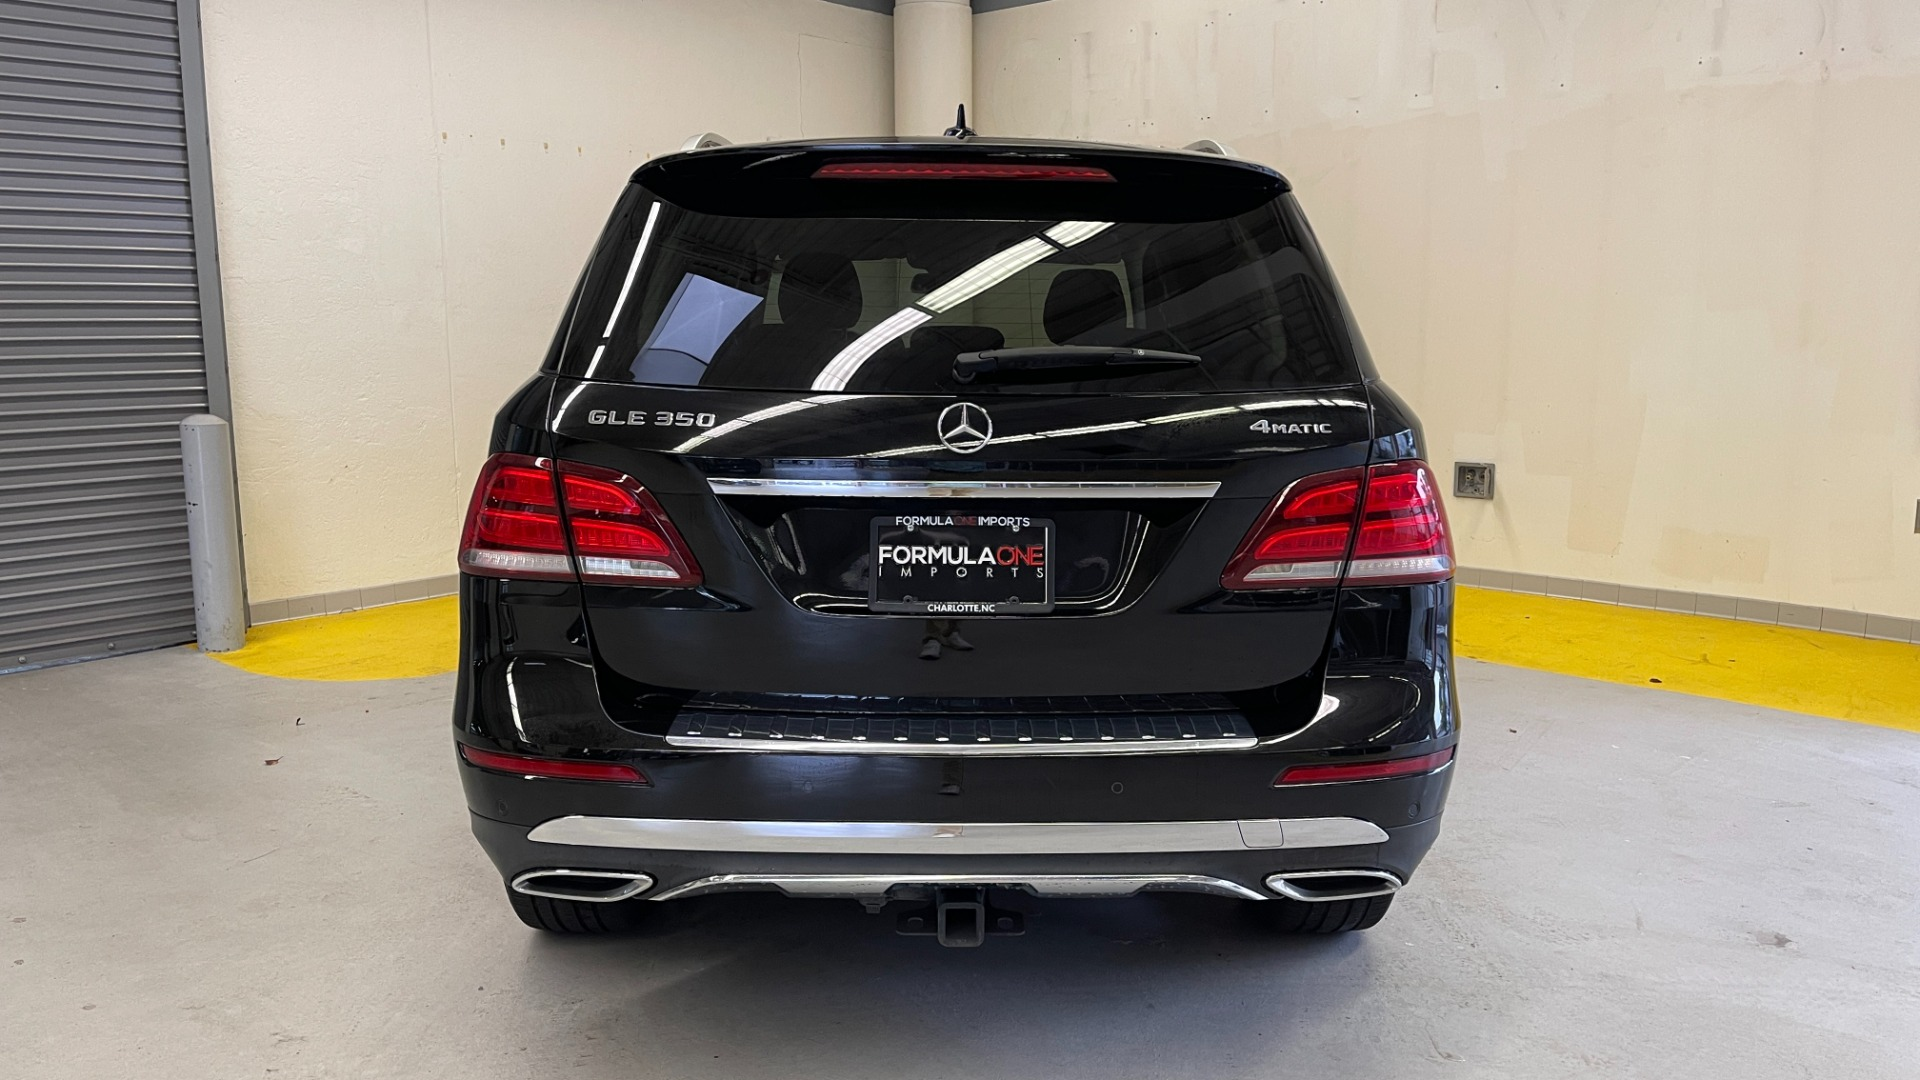 Used 2018 Mercedes-Benz GLE 350 4MATIC PREMIUM / NAV / PARK PILOT / BSA / H/K SND / SURROUND VIEW for sale $40,995 at Formula Imports in Charlotte NC 28227 5